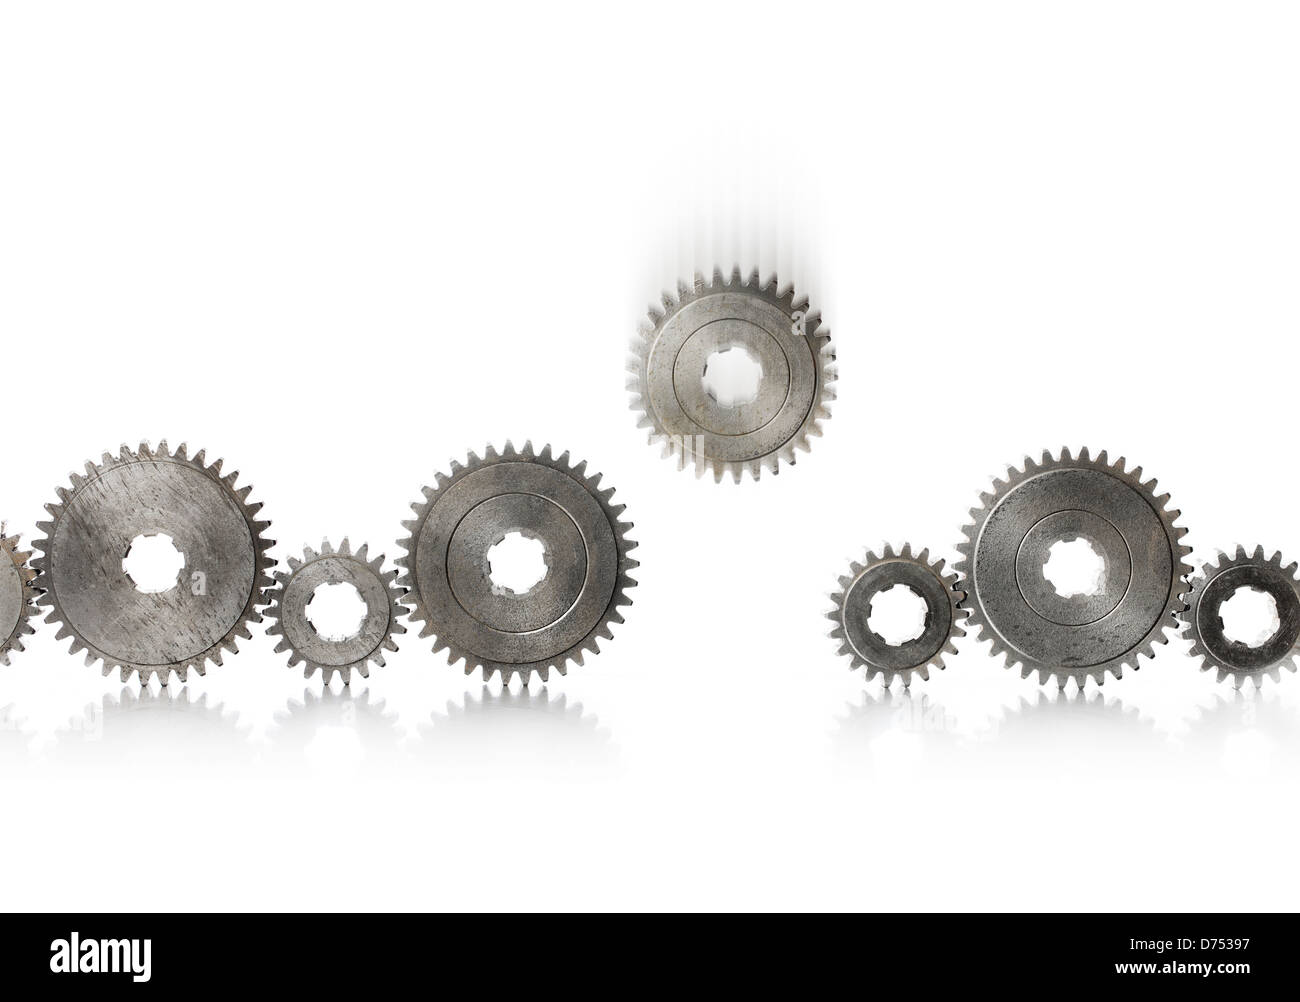 A row of old metallic cog gears being filled with one blurry falling gear. - Stock Image